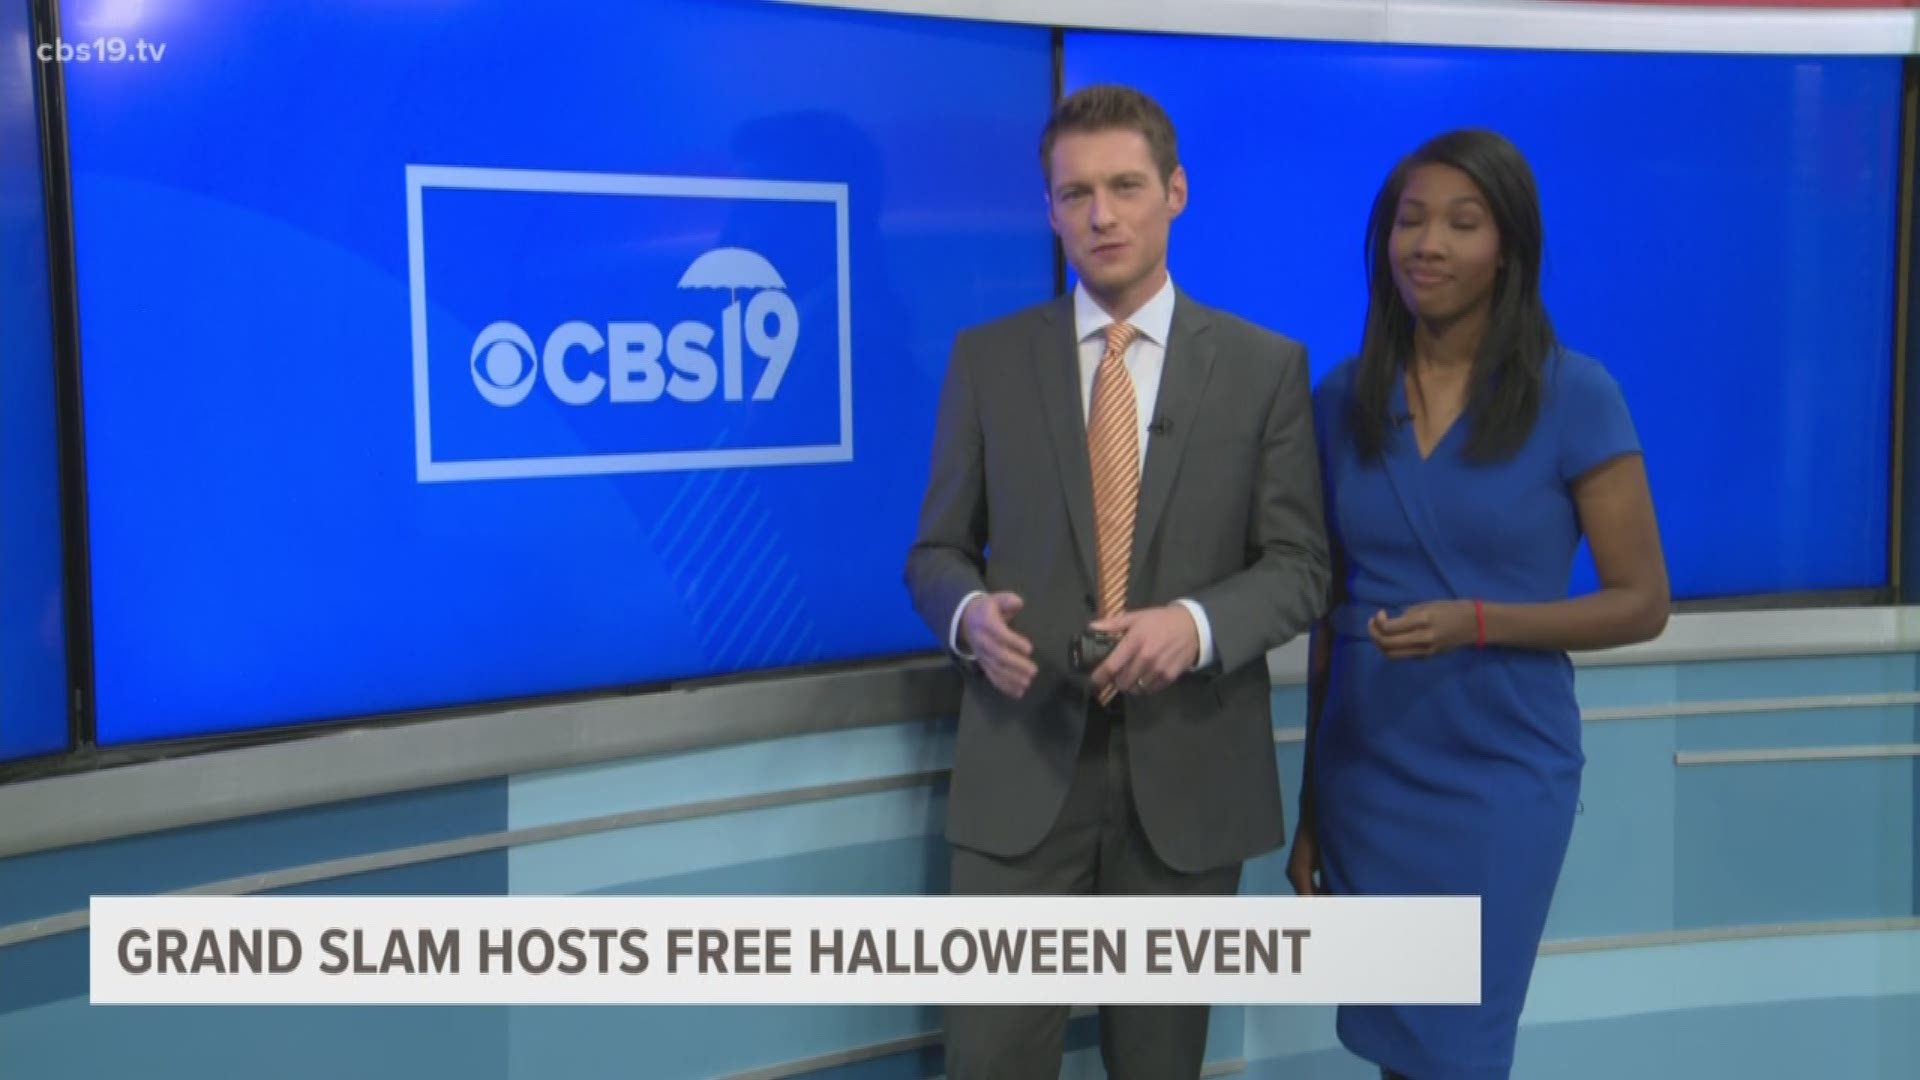 Free Food For Kids On Halloween 2020 Tyler Tx What to do on Halloween in East Texas | cbs19.tv